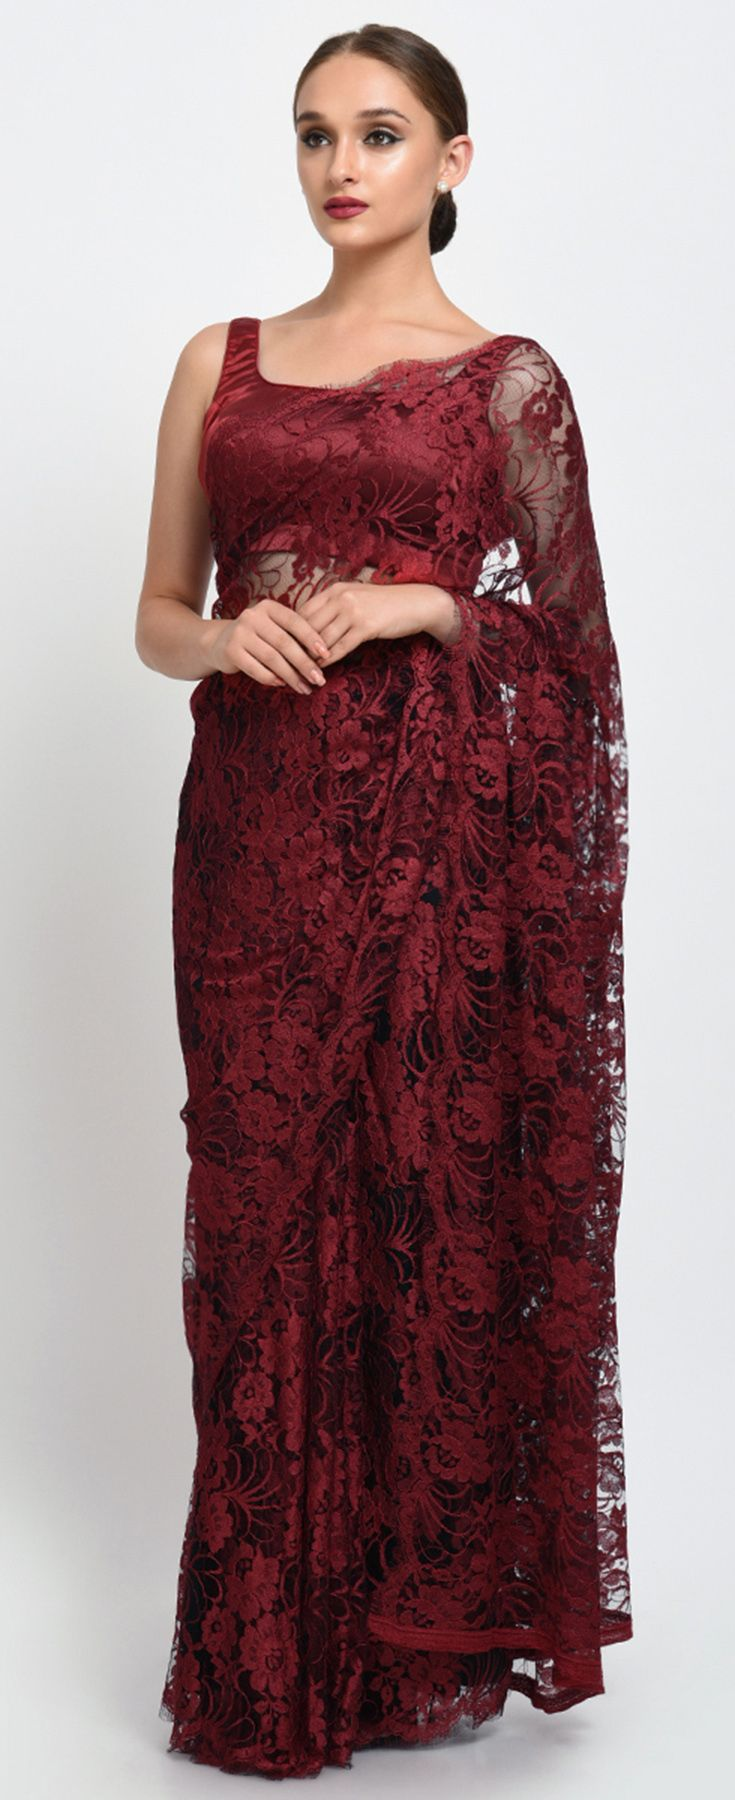 66e156d1be5 Maroon- Black French Chantilly Lace Saree With Satin Crepe Blouse ...